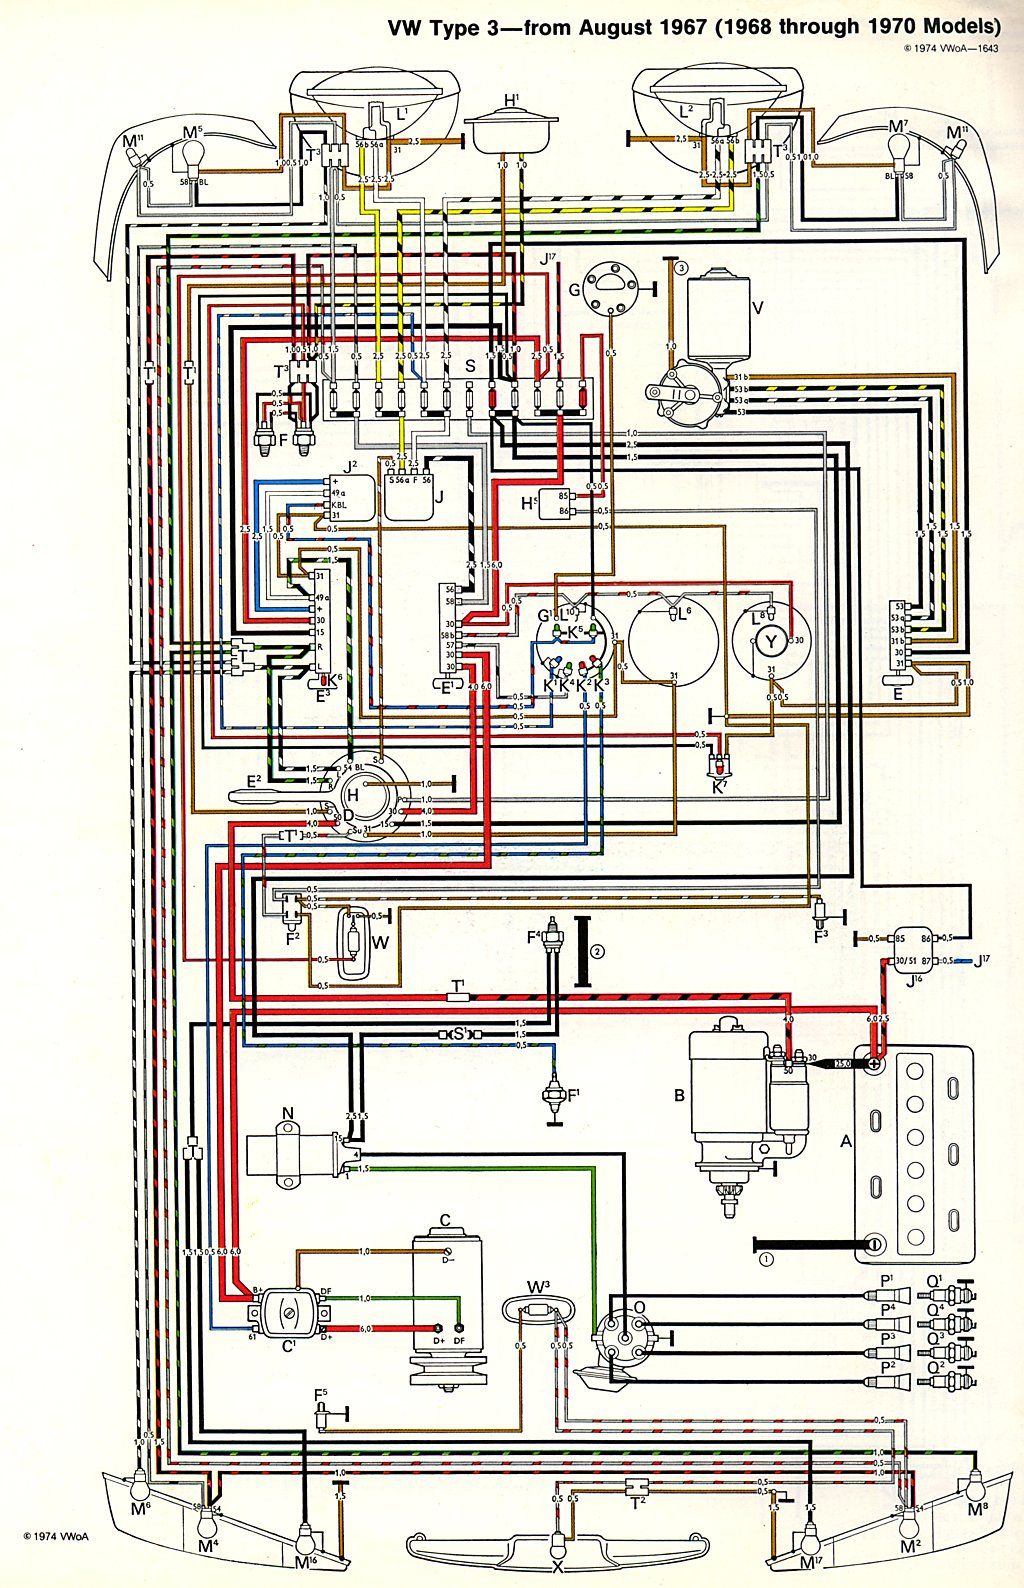 1969 Vw Wiring Harness Diagram Wire Data Schema Vintage 71 Type 3 Basics Fuel Pump Relay U2022 Rh Rimaz Co Alternator